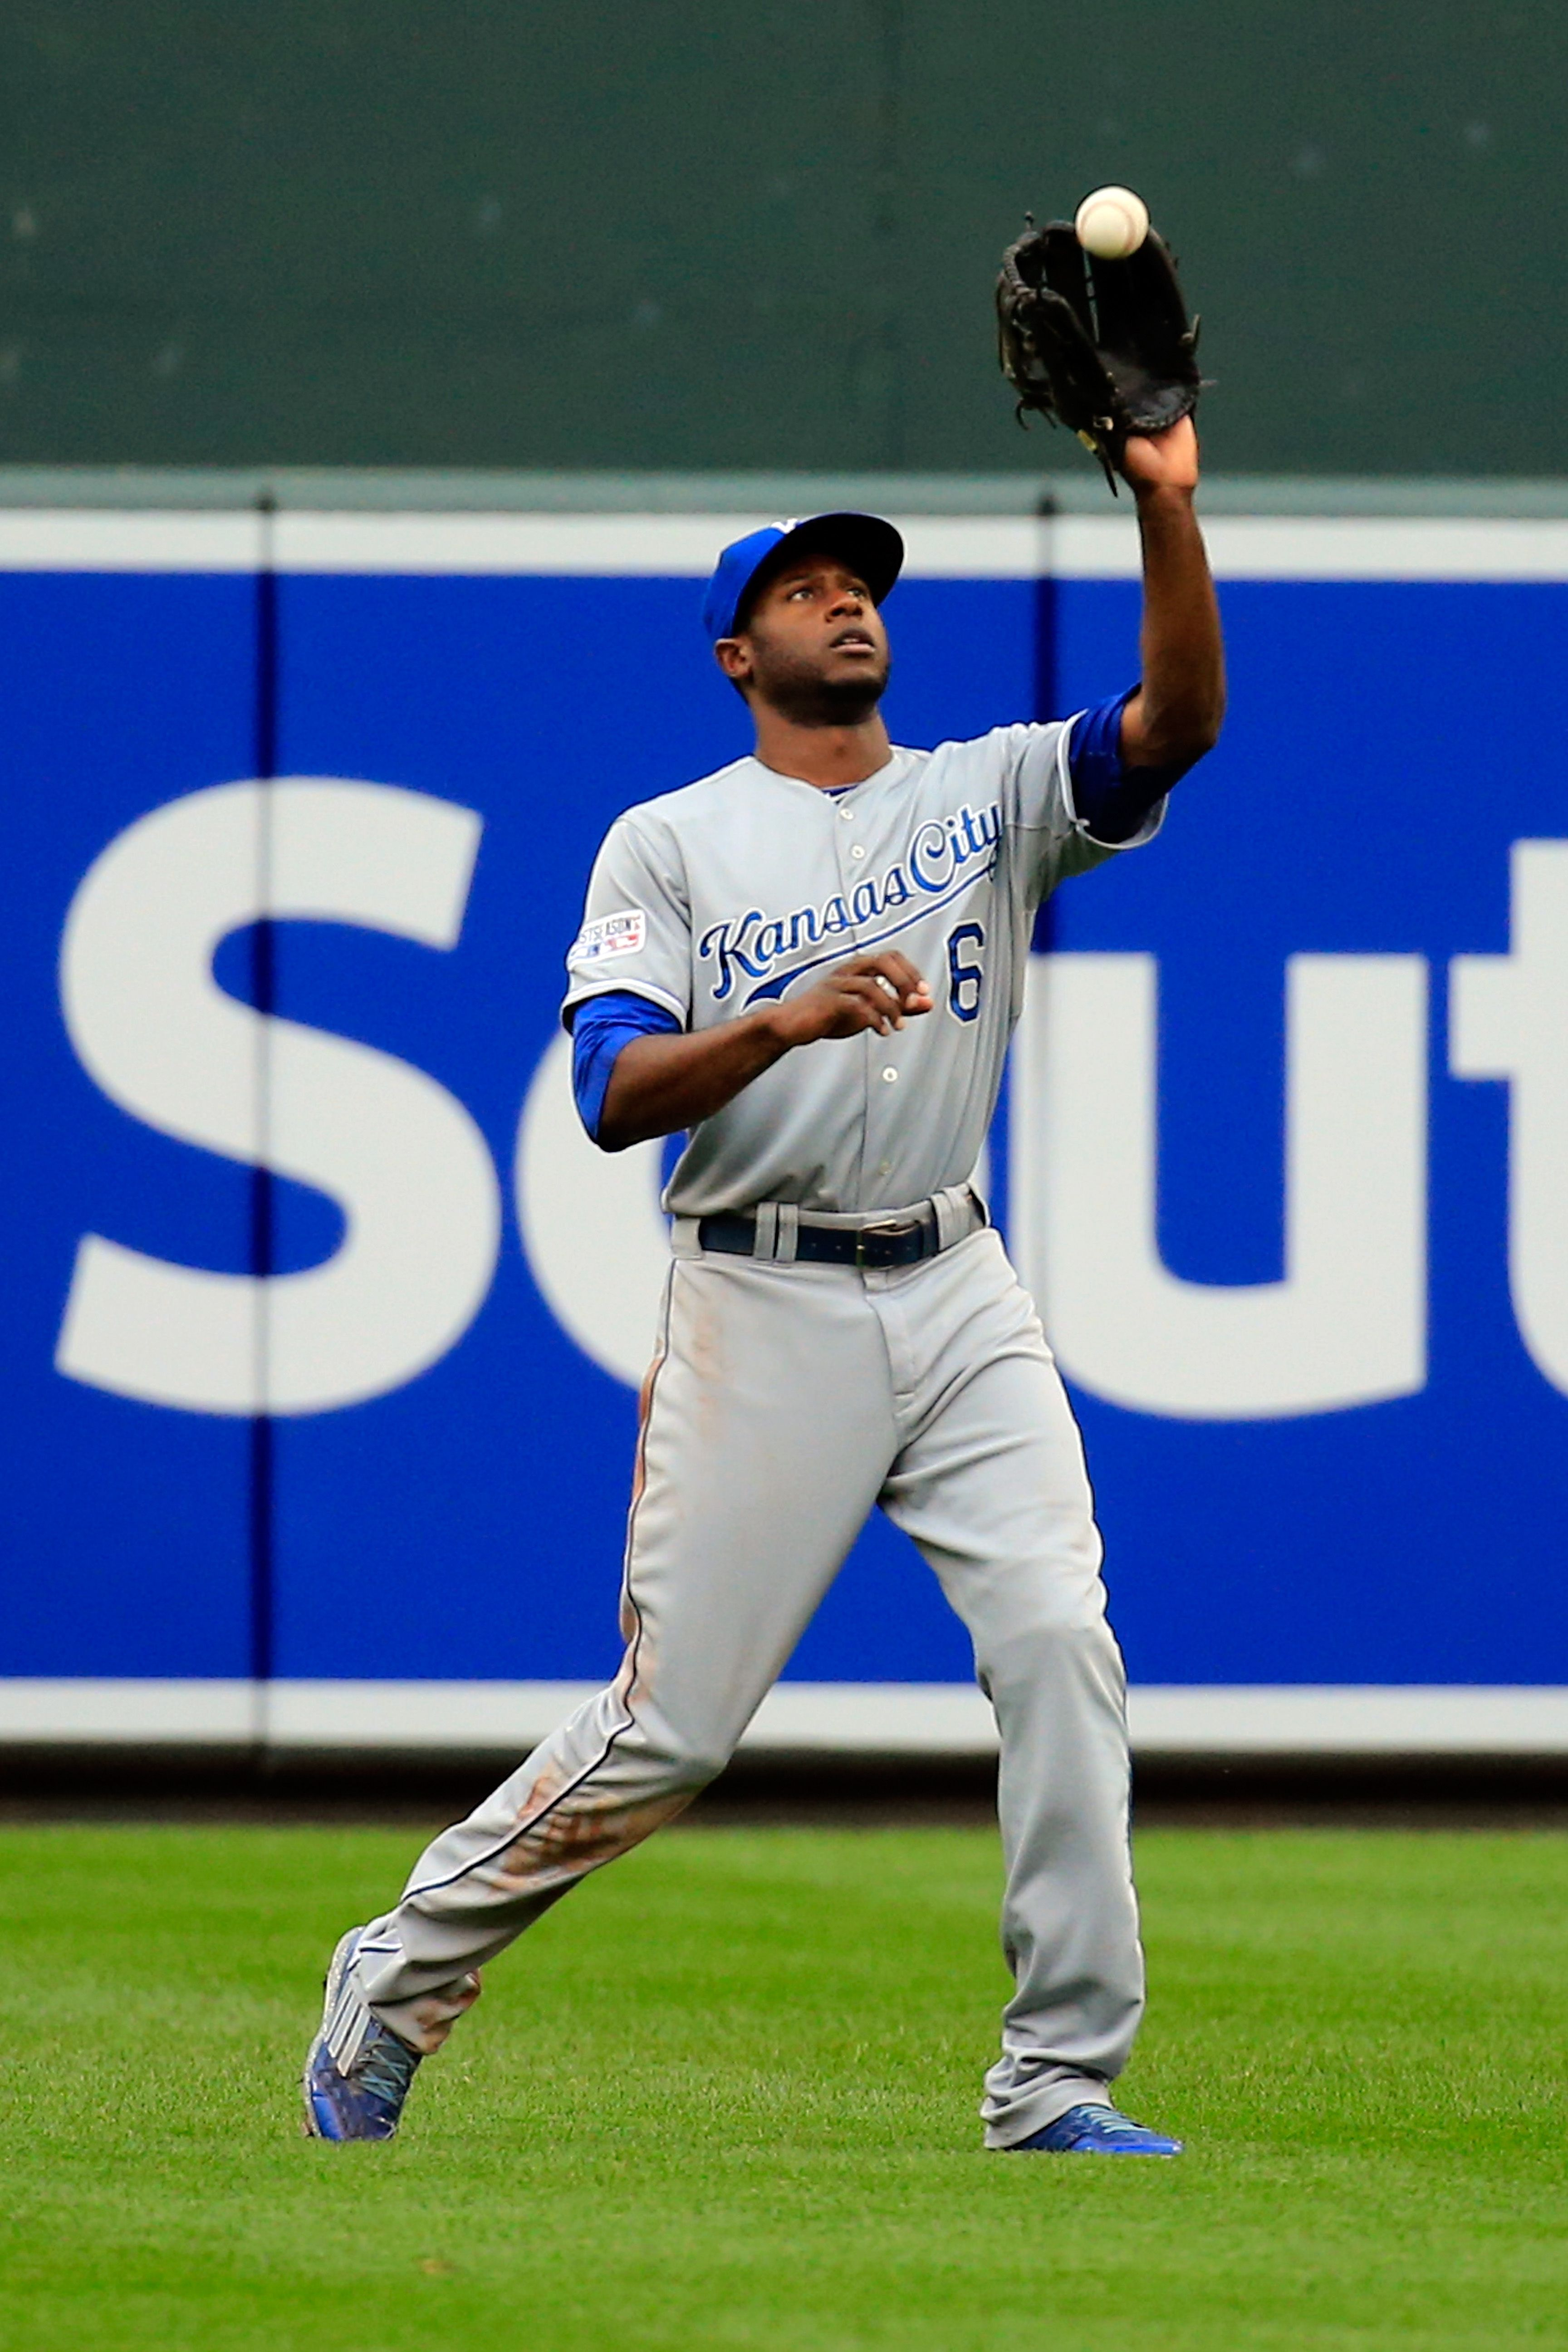 Tools made good: the case of Lorenzo Cain - Minor League Ball